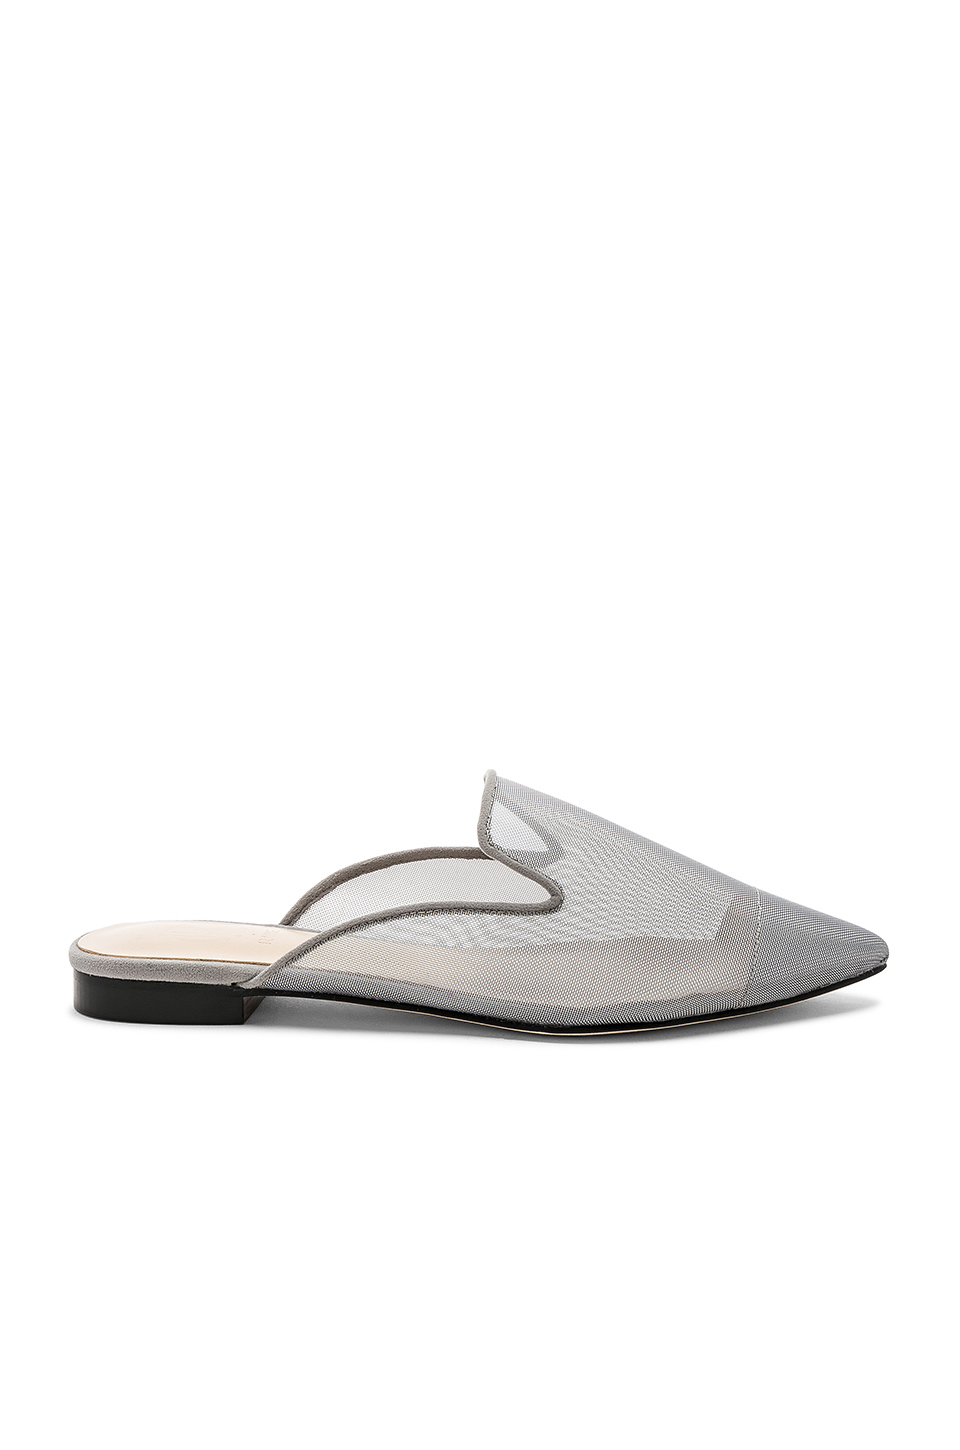 RAYE x House Of Harlow 1960 Quinn Flat in Grey